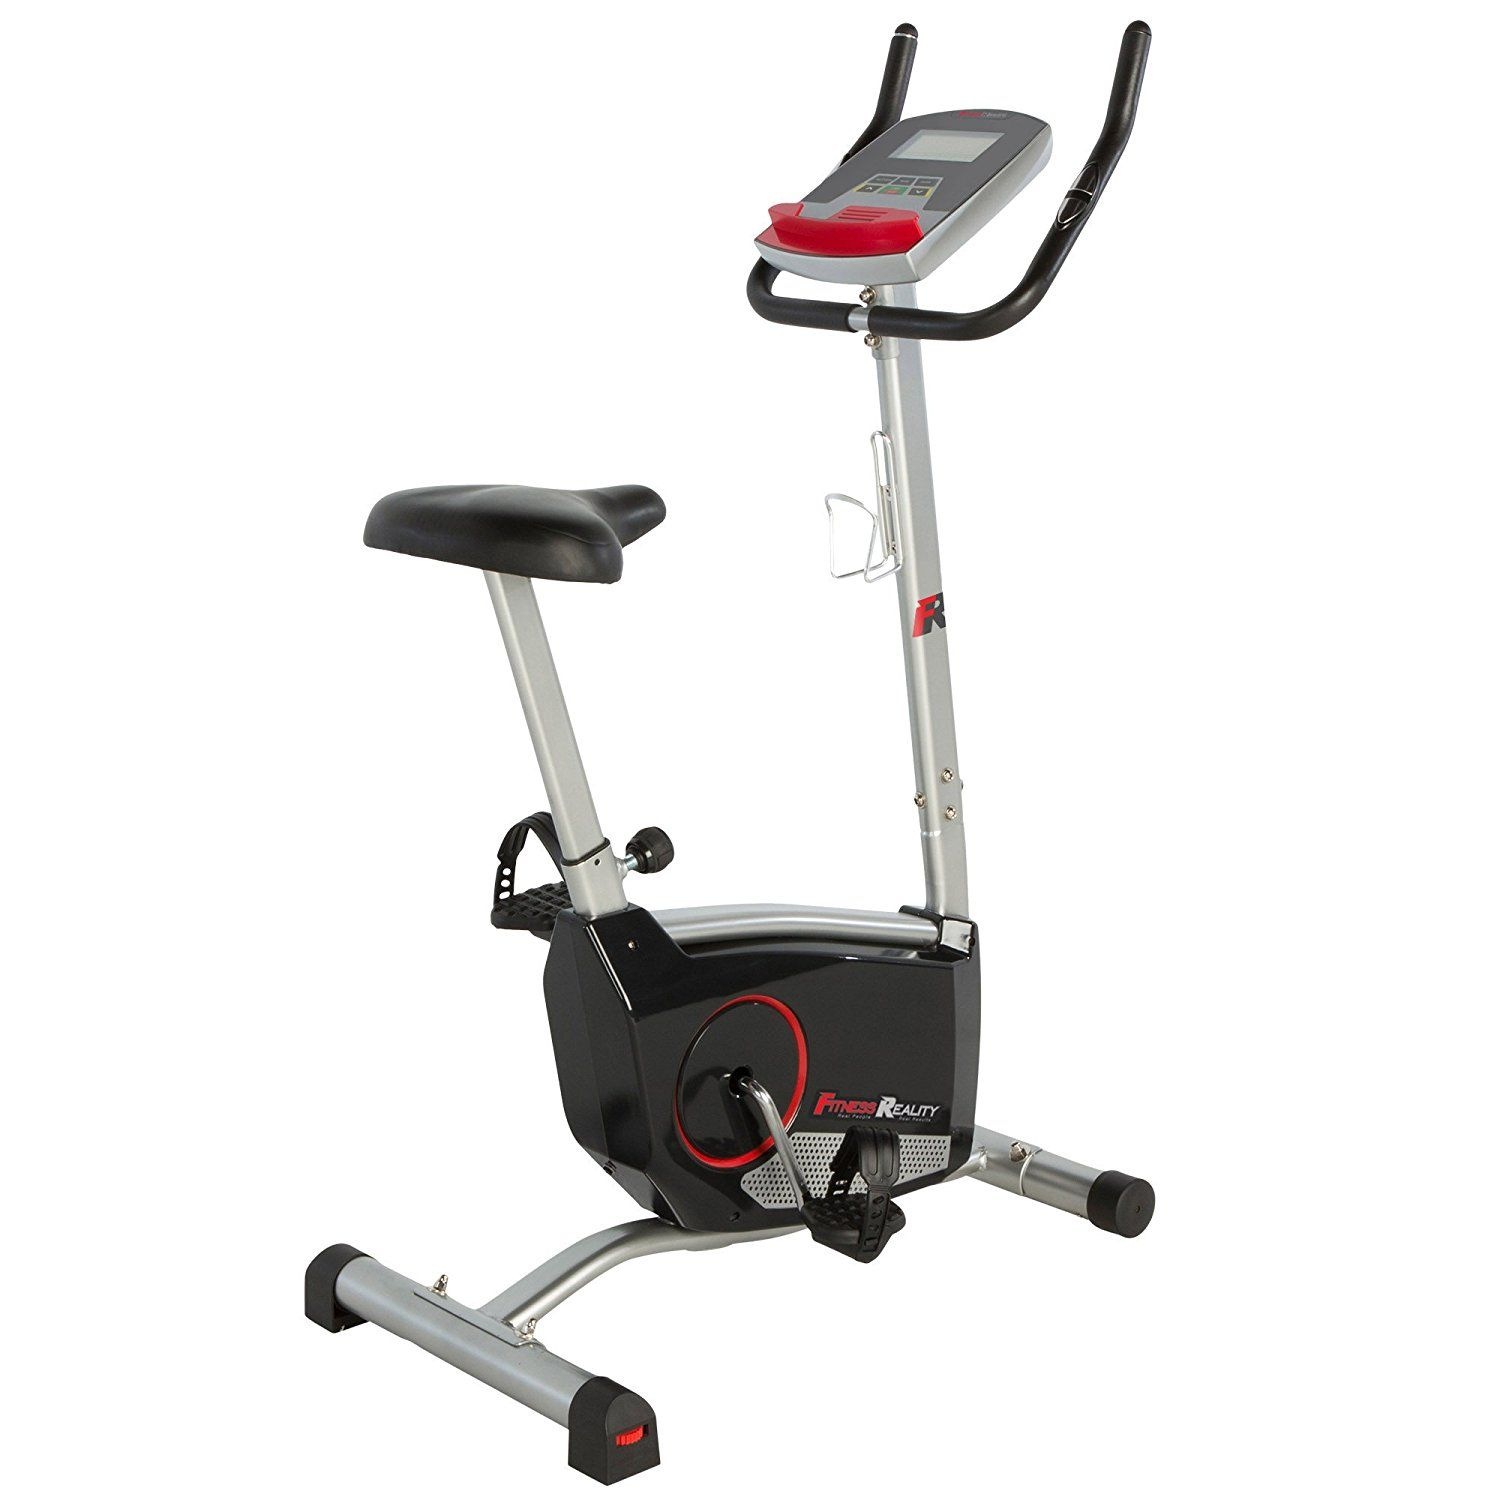 This Fitness Reality 210 Upright Exercise Bike Can Support Users